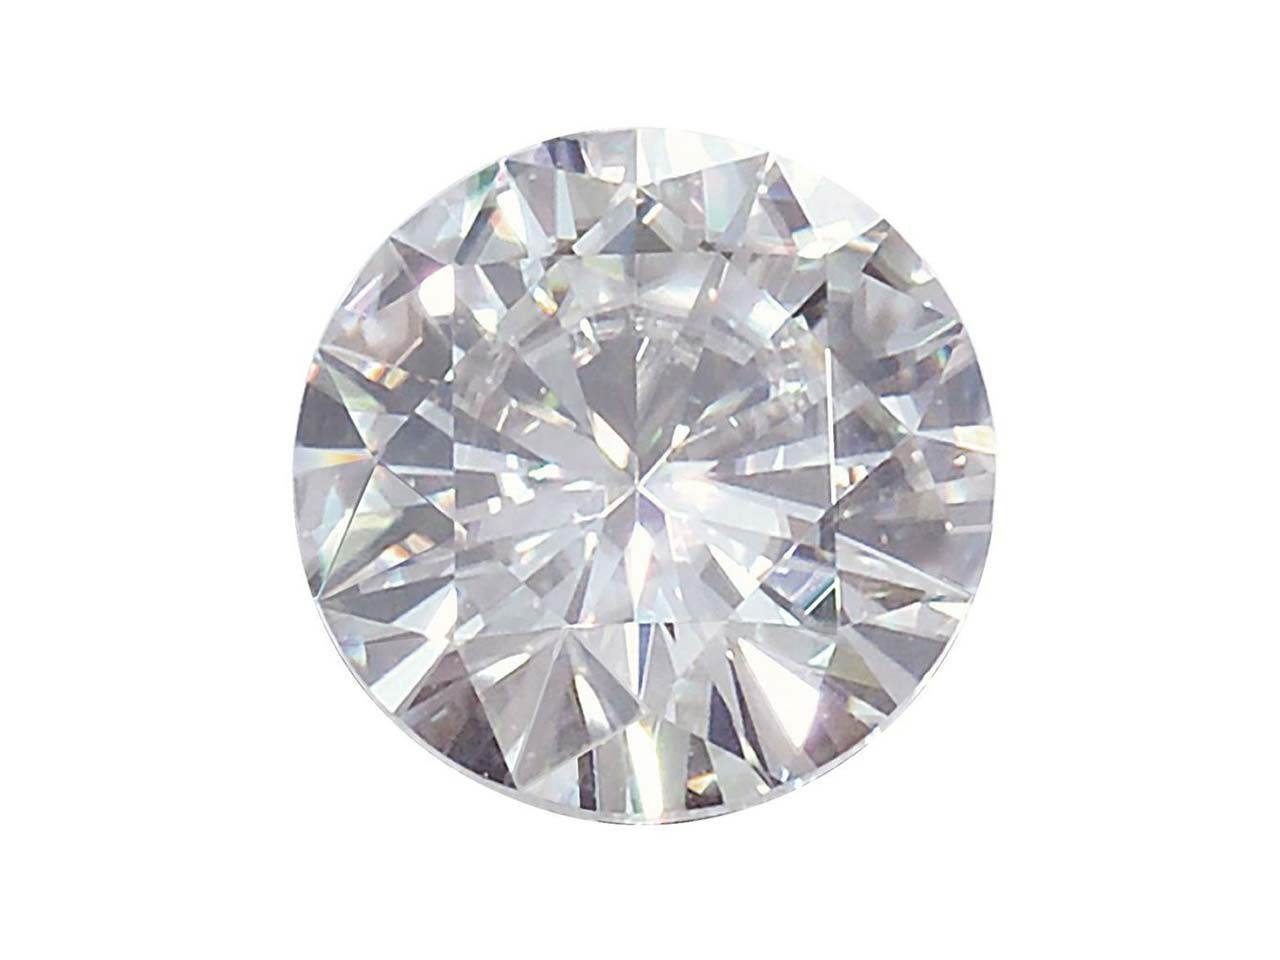 Moissanite, Round 4mm 0.22cts,     Diamond Equivalent 0.25cts, Very   Good Quality